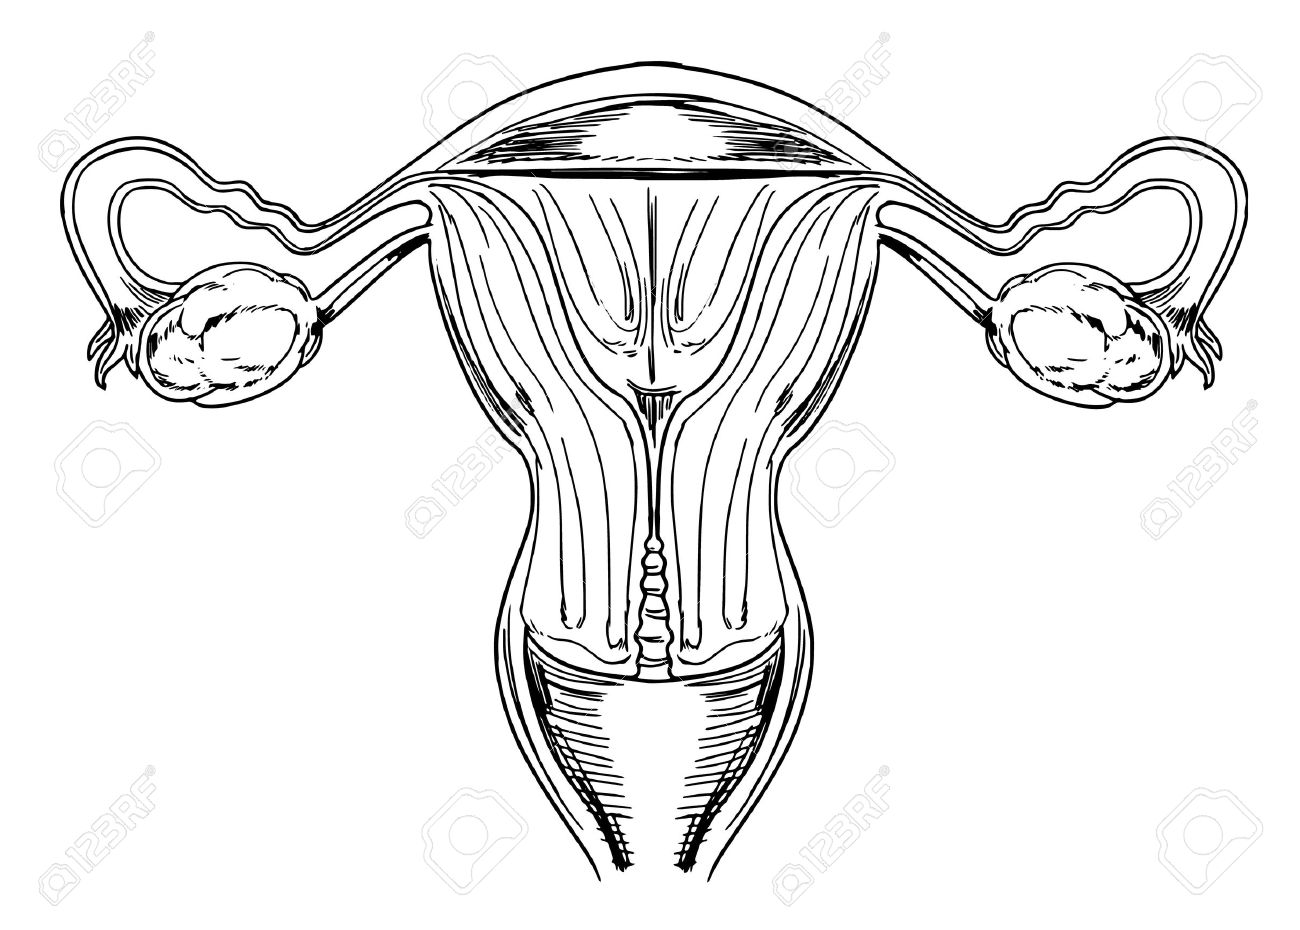 Diagram Of The Internal Female Reproductive Organs Royalty Free